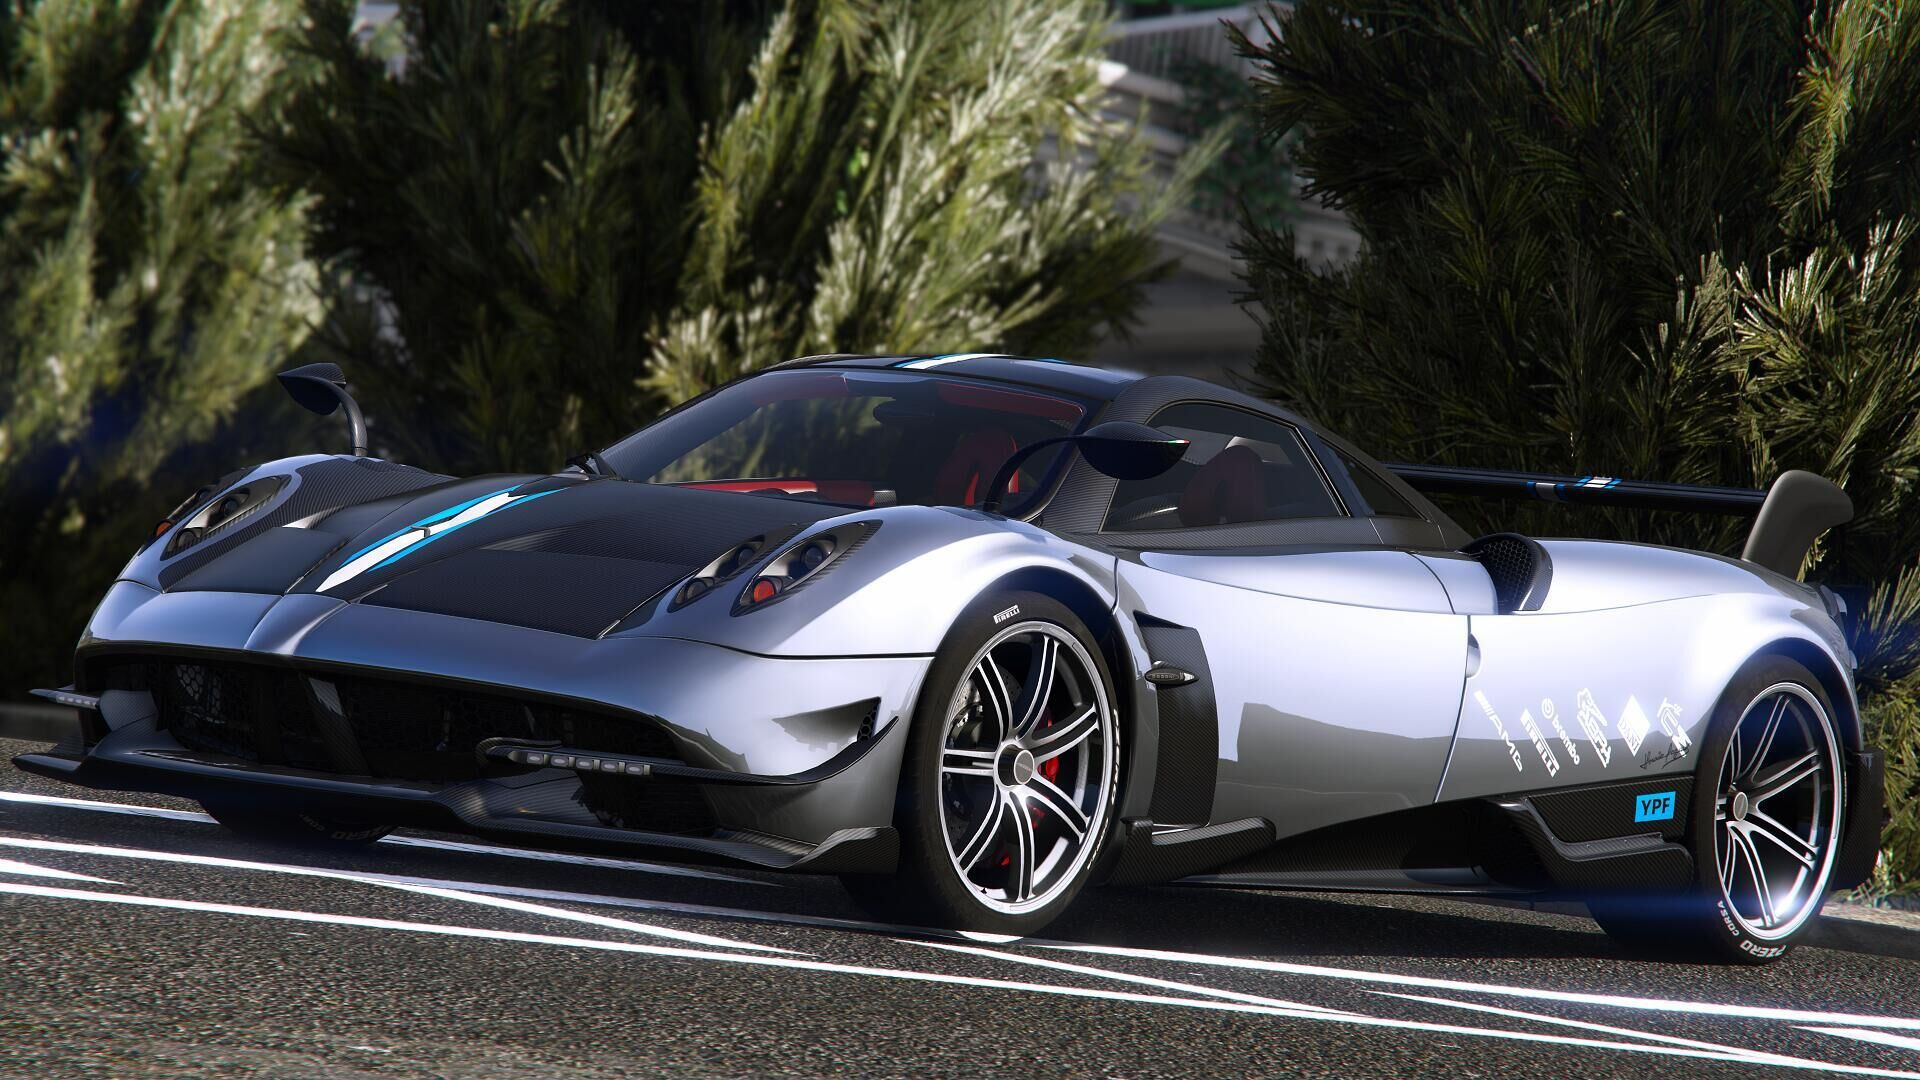 Mercedes Sports Cars Wallpapers Pagani Huayra Bc Wallpapers Backgrounds